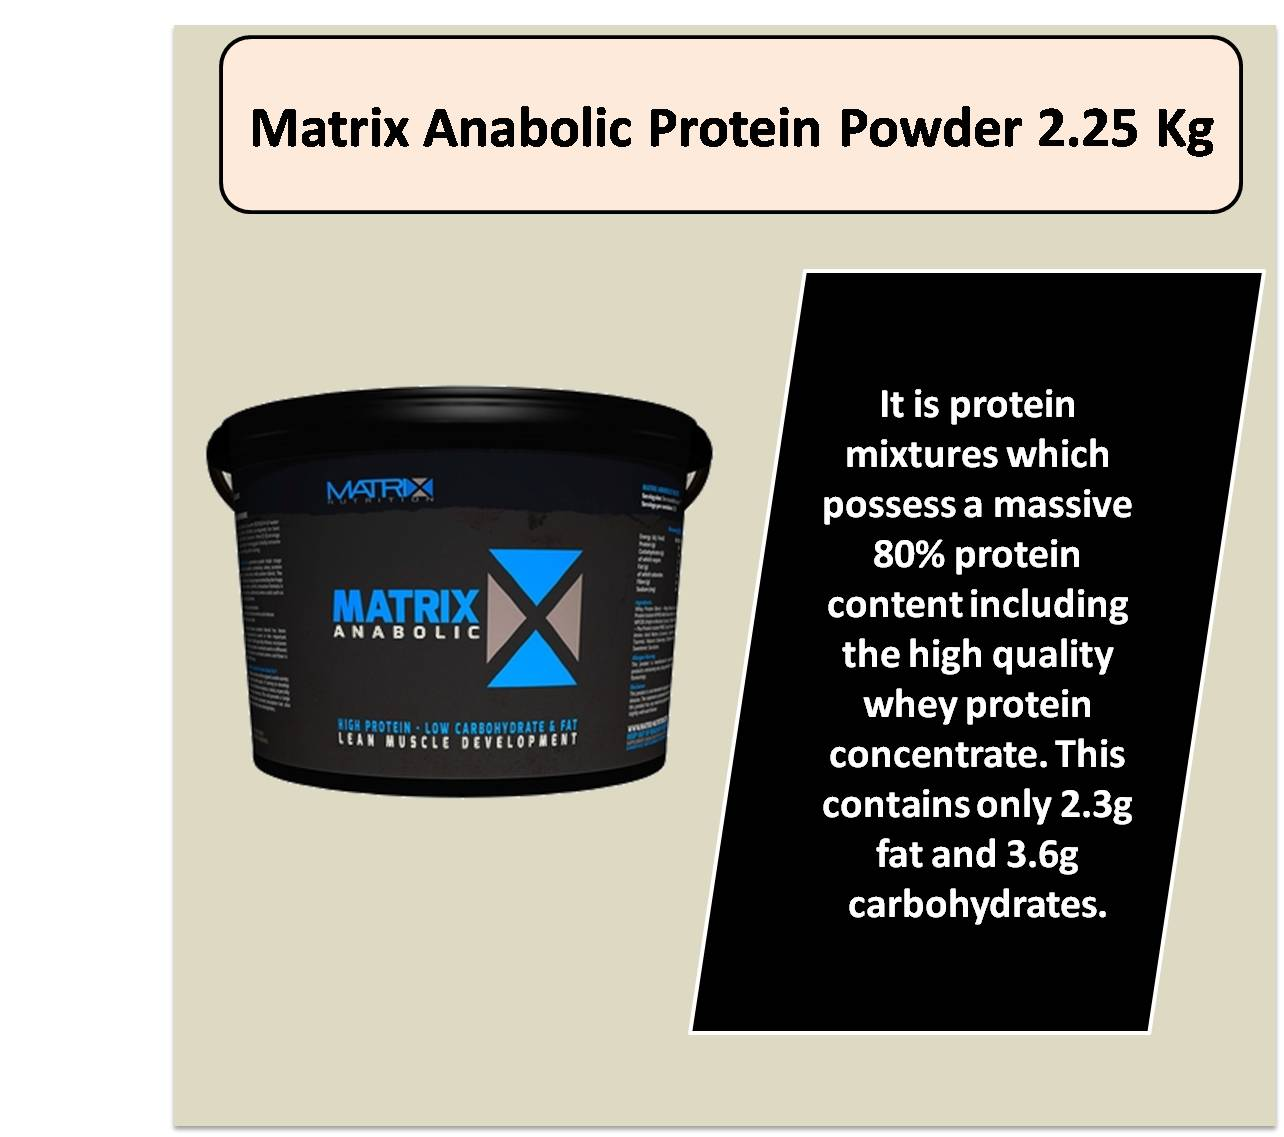 Matrix Anabolic Protein Powder 2.25 Kg